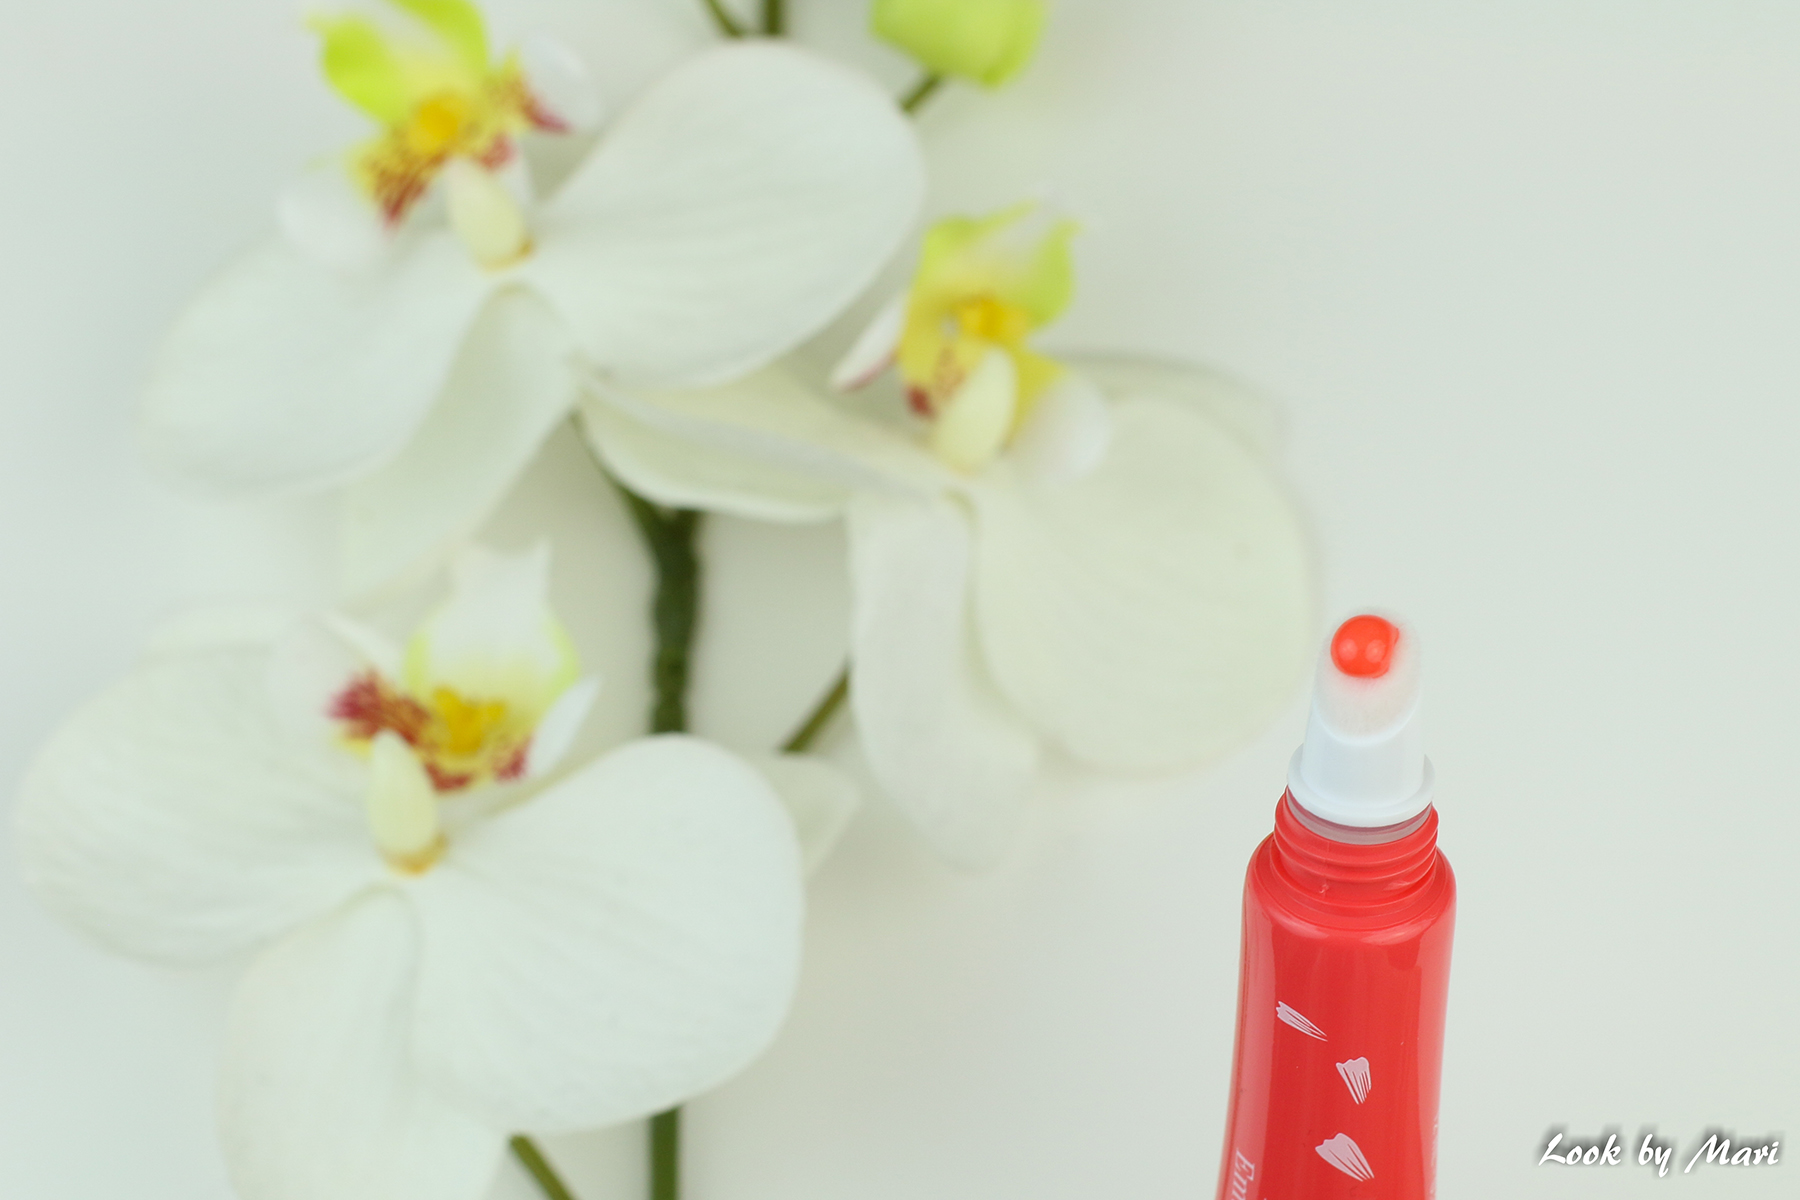 9 clarins instant light natural lip perfector review kokemuksia 10 pink shimmer